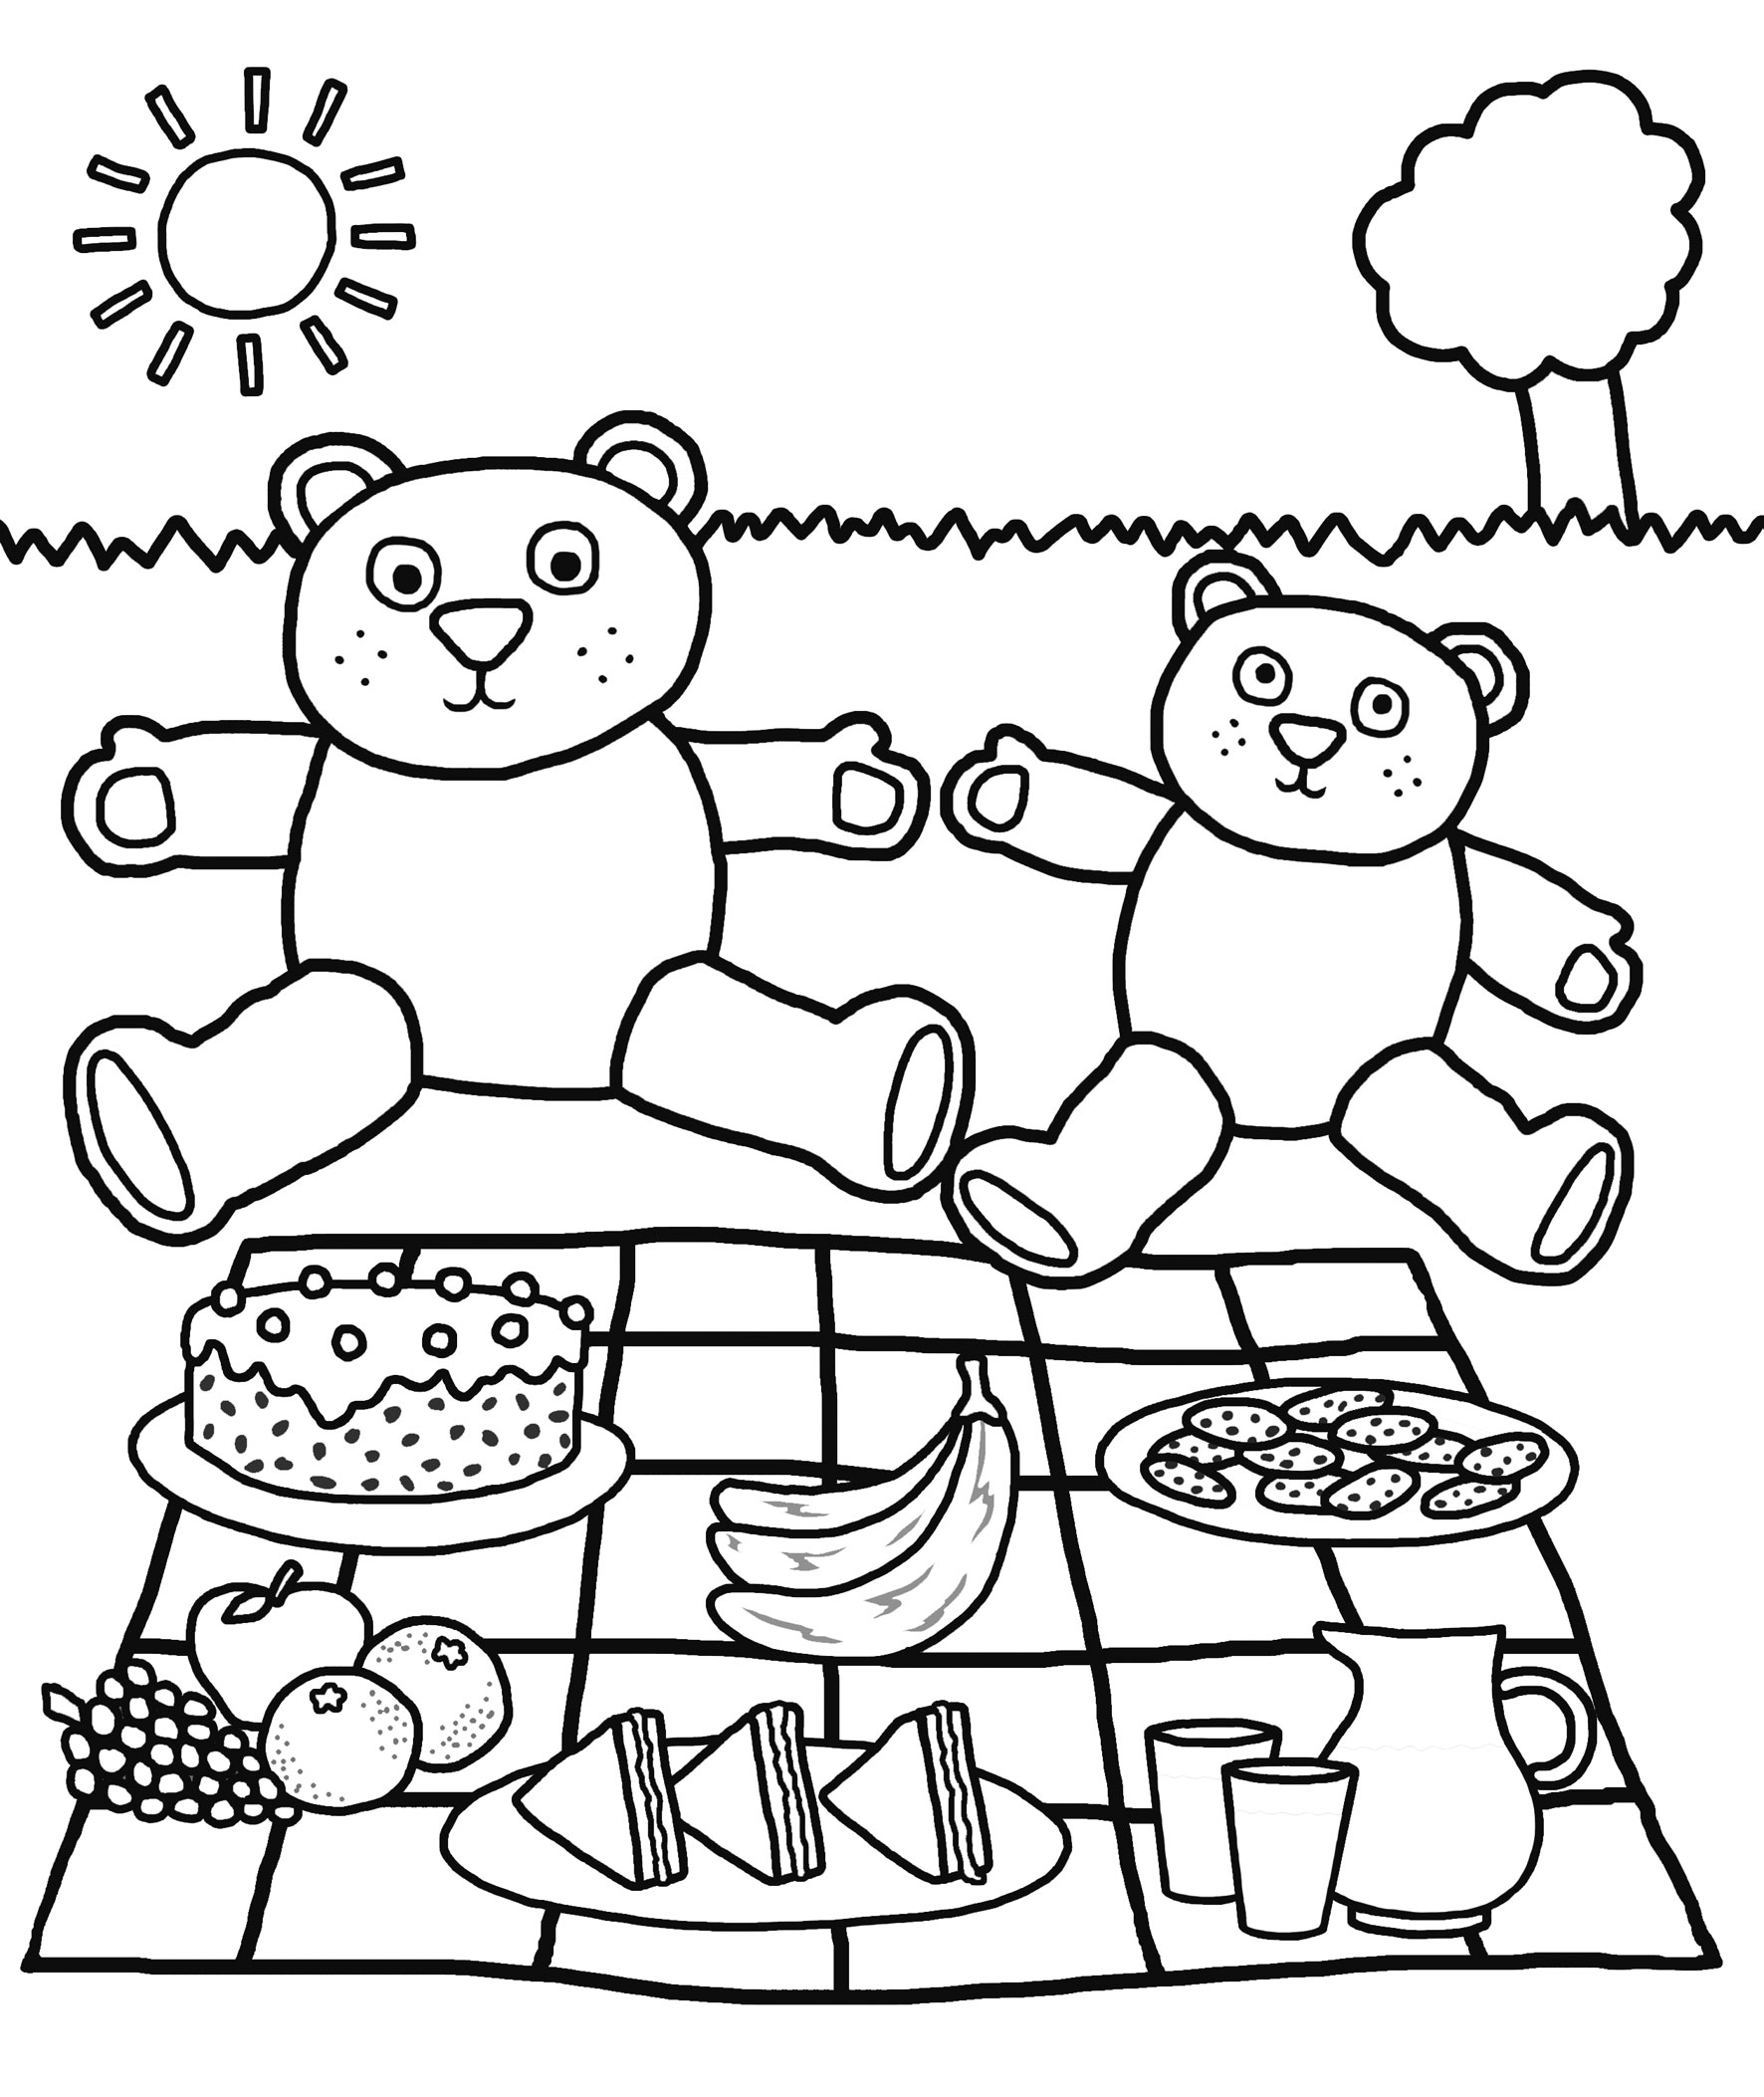 free kindergarten coloring pages - Free Coloring Pages For Kindergarten